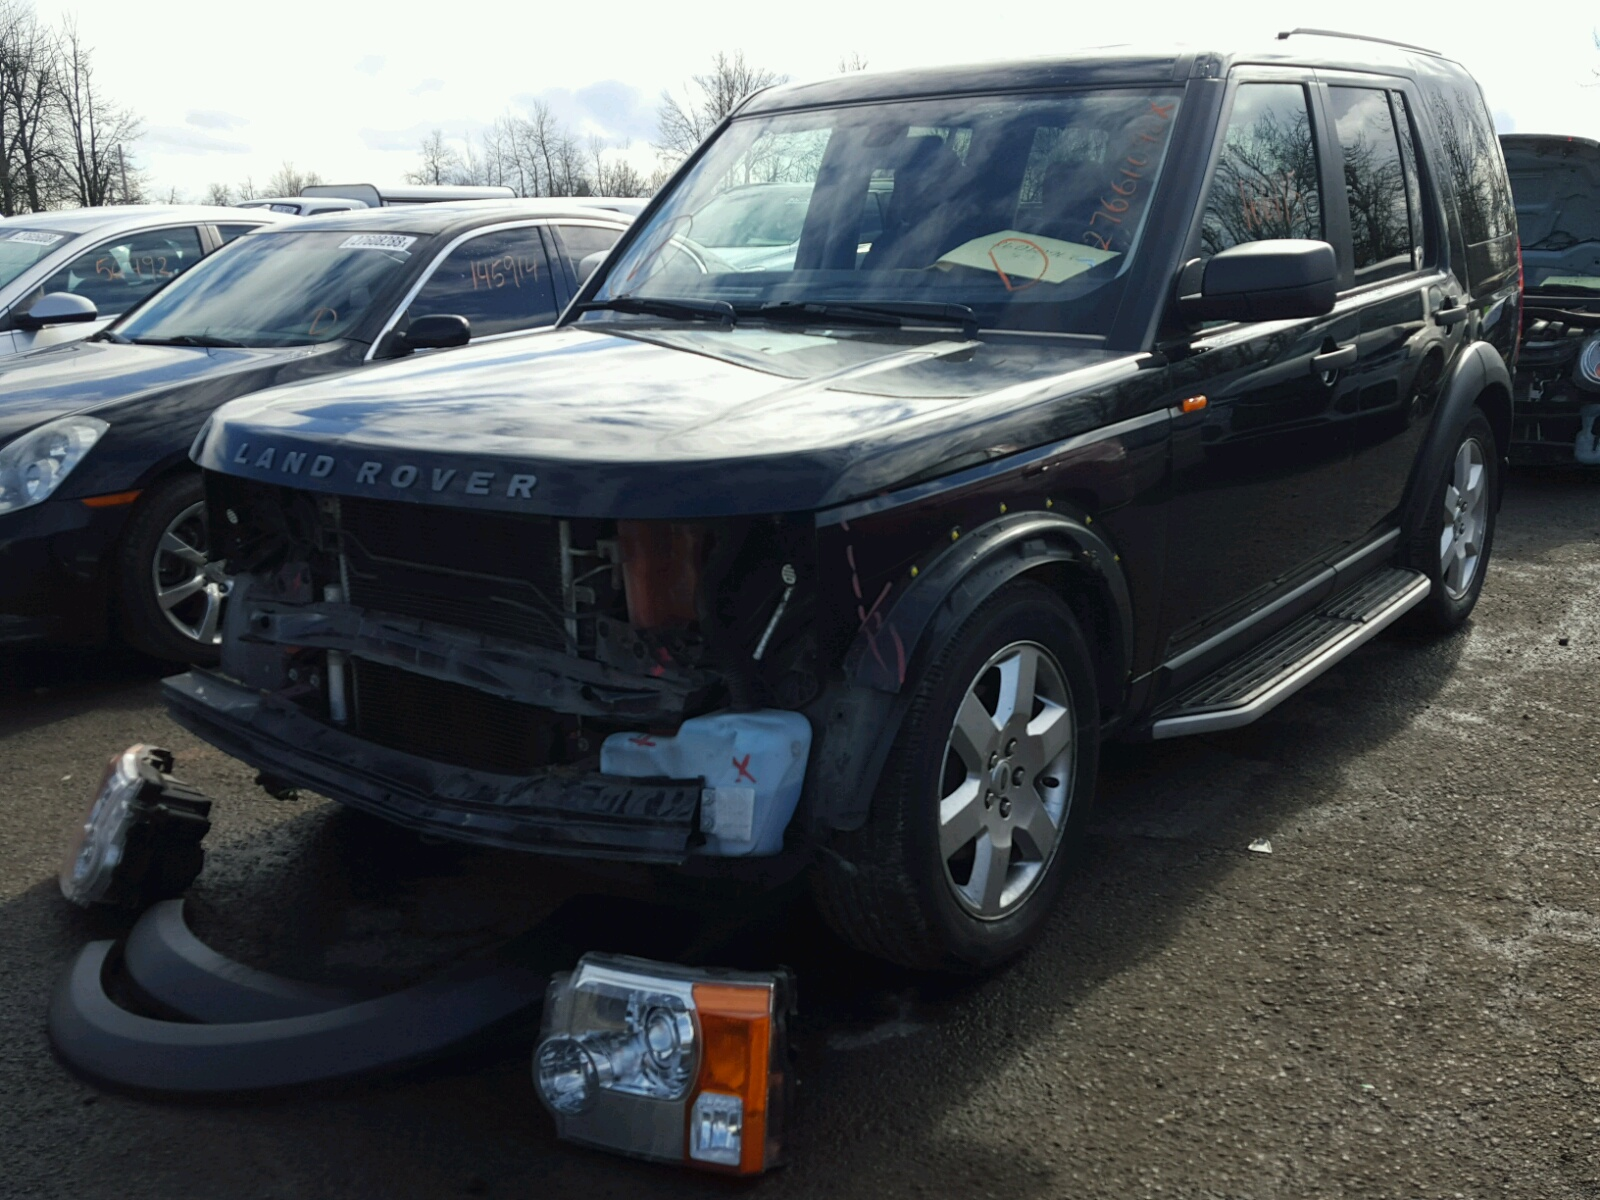 lot west certificate vin for beach fl sale online discovery auction palm land destruction en copart of carfinder hse on landrover auto auctions ended rover